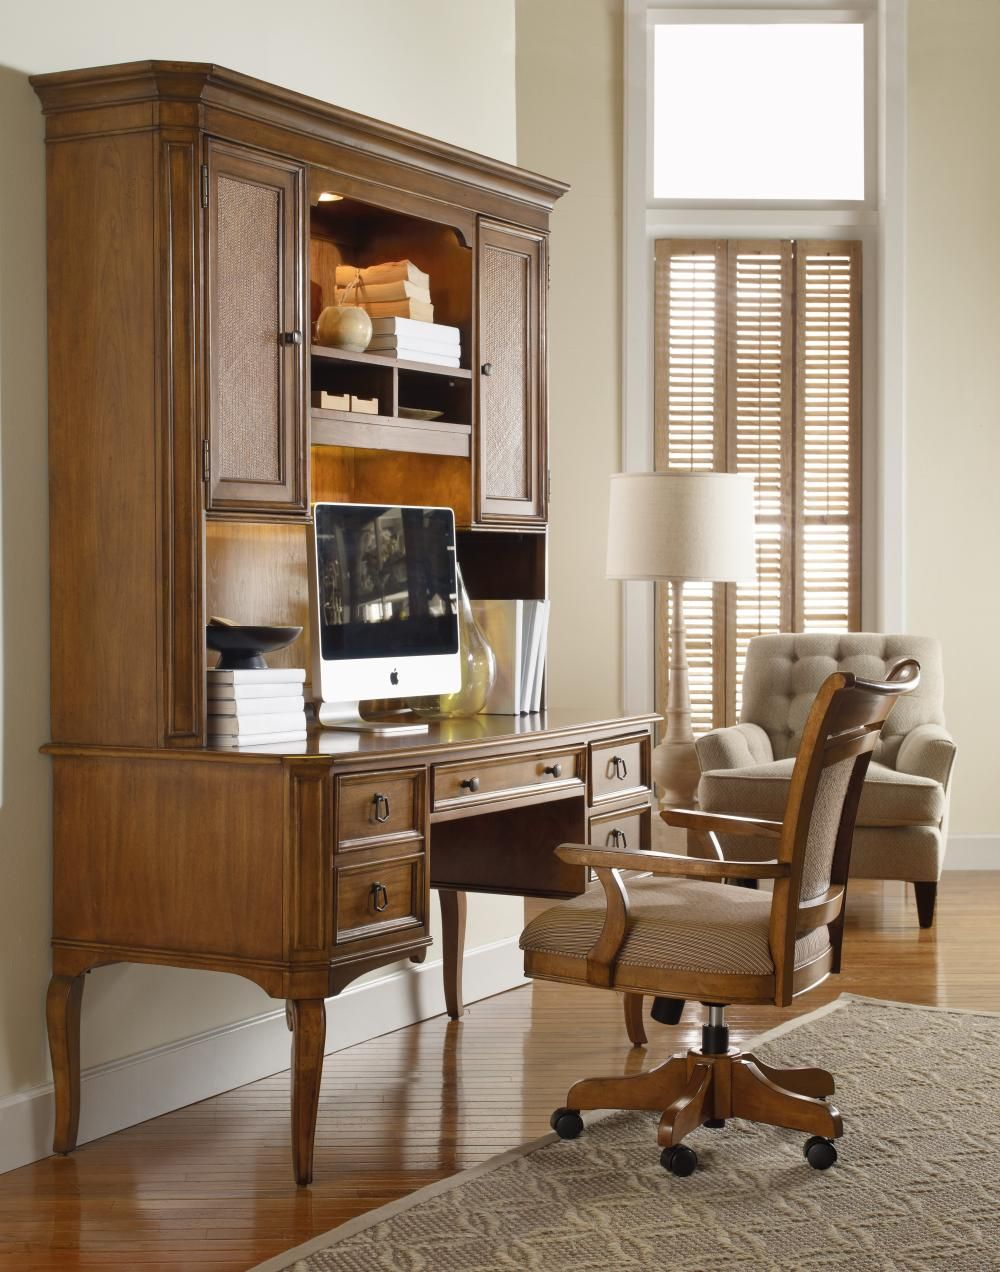 Summerwind Desk & Hutch, another great look for a home office